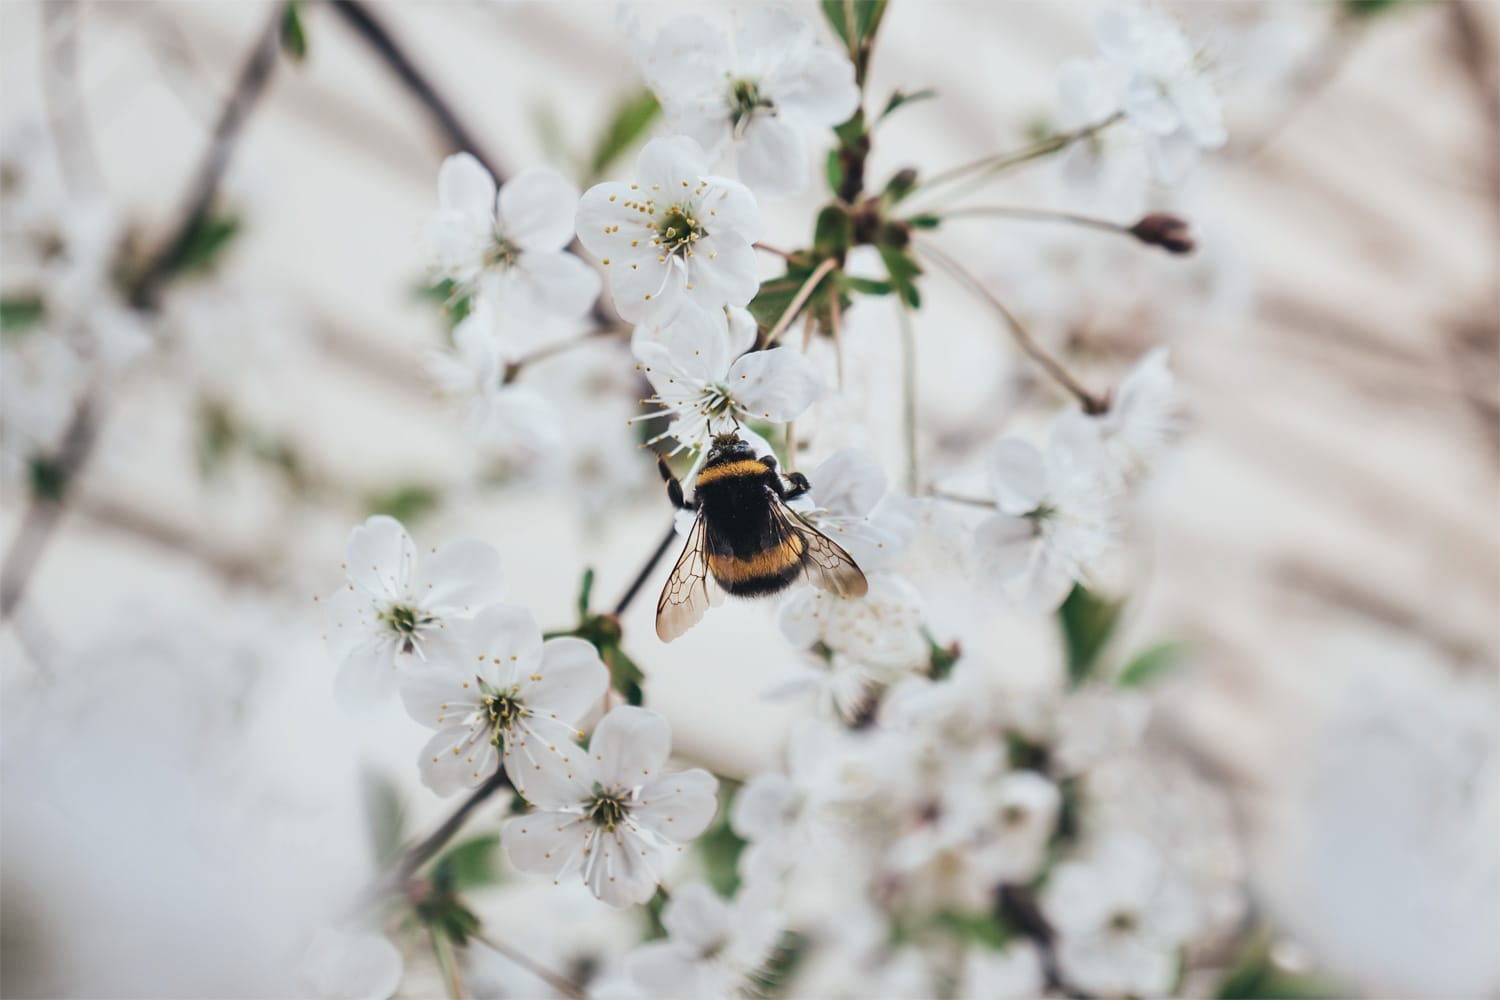 bumblebee in cherry blossom